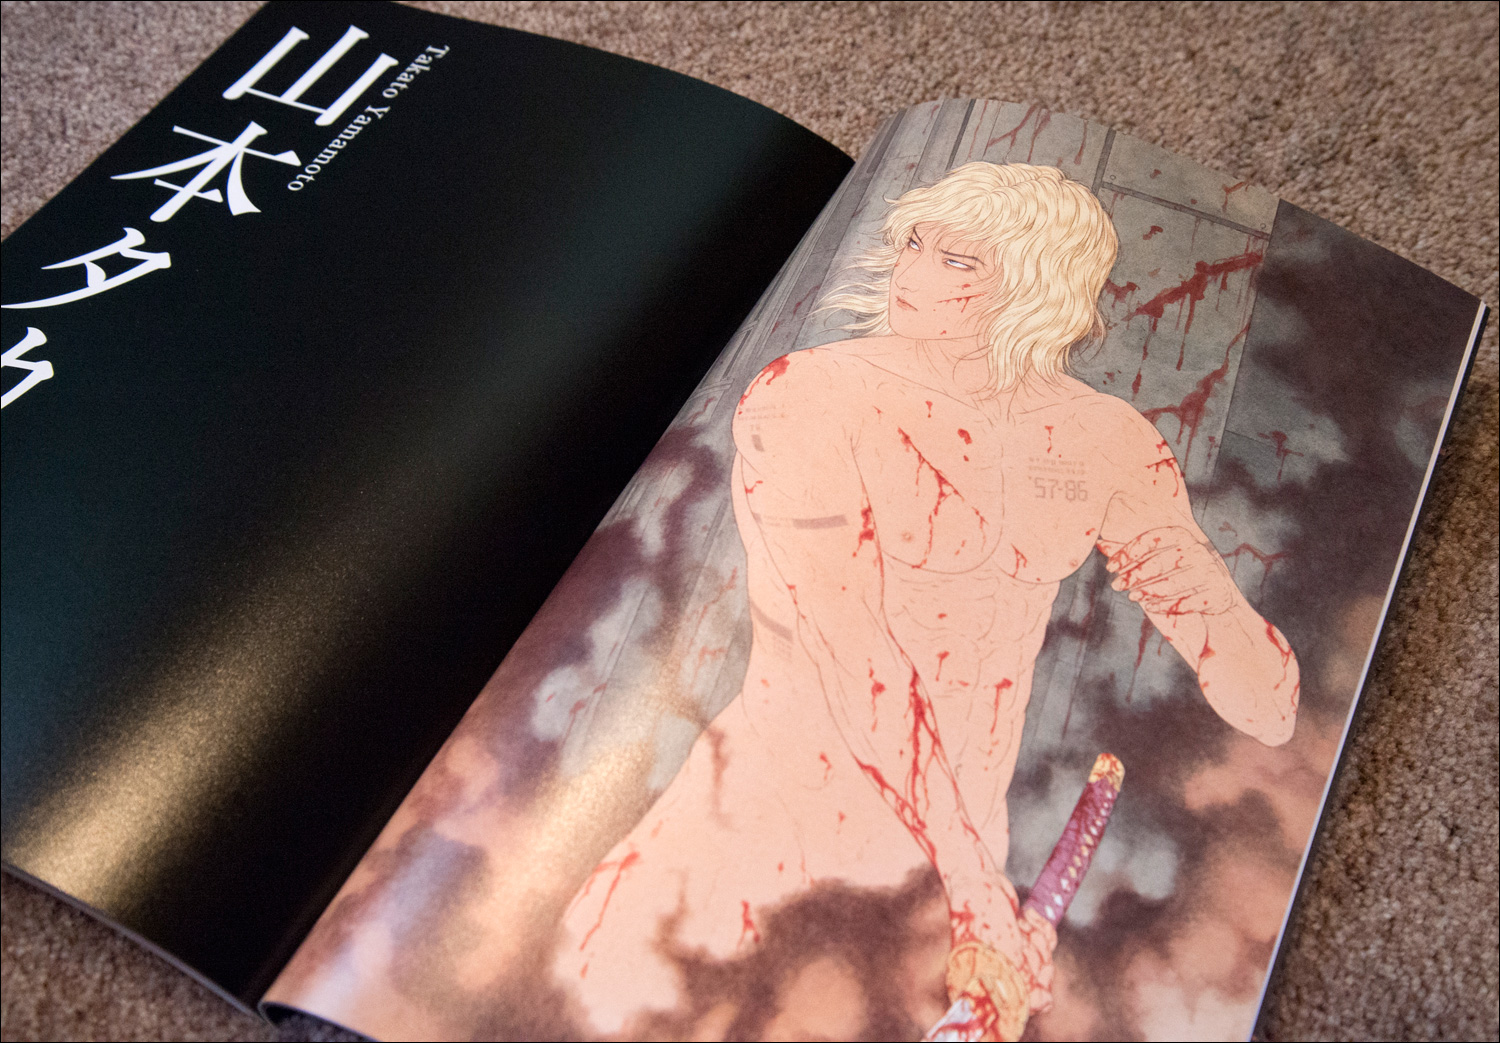 Metal-Gear-Solid-2-Sons-of-Liberty-Premium-Package-Book-Raiden-Takato-Yamamoto